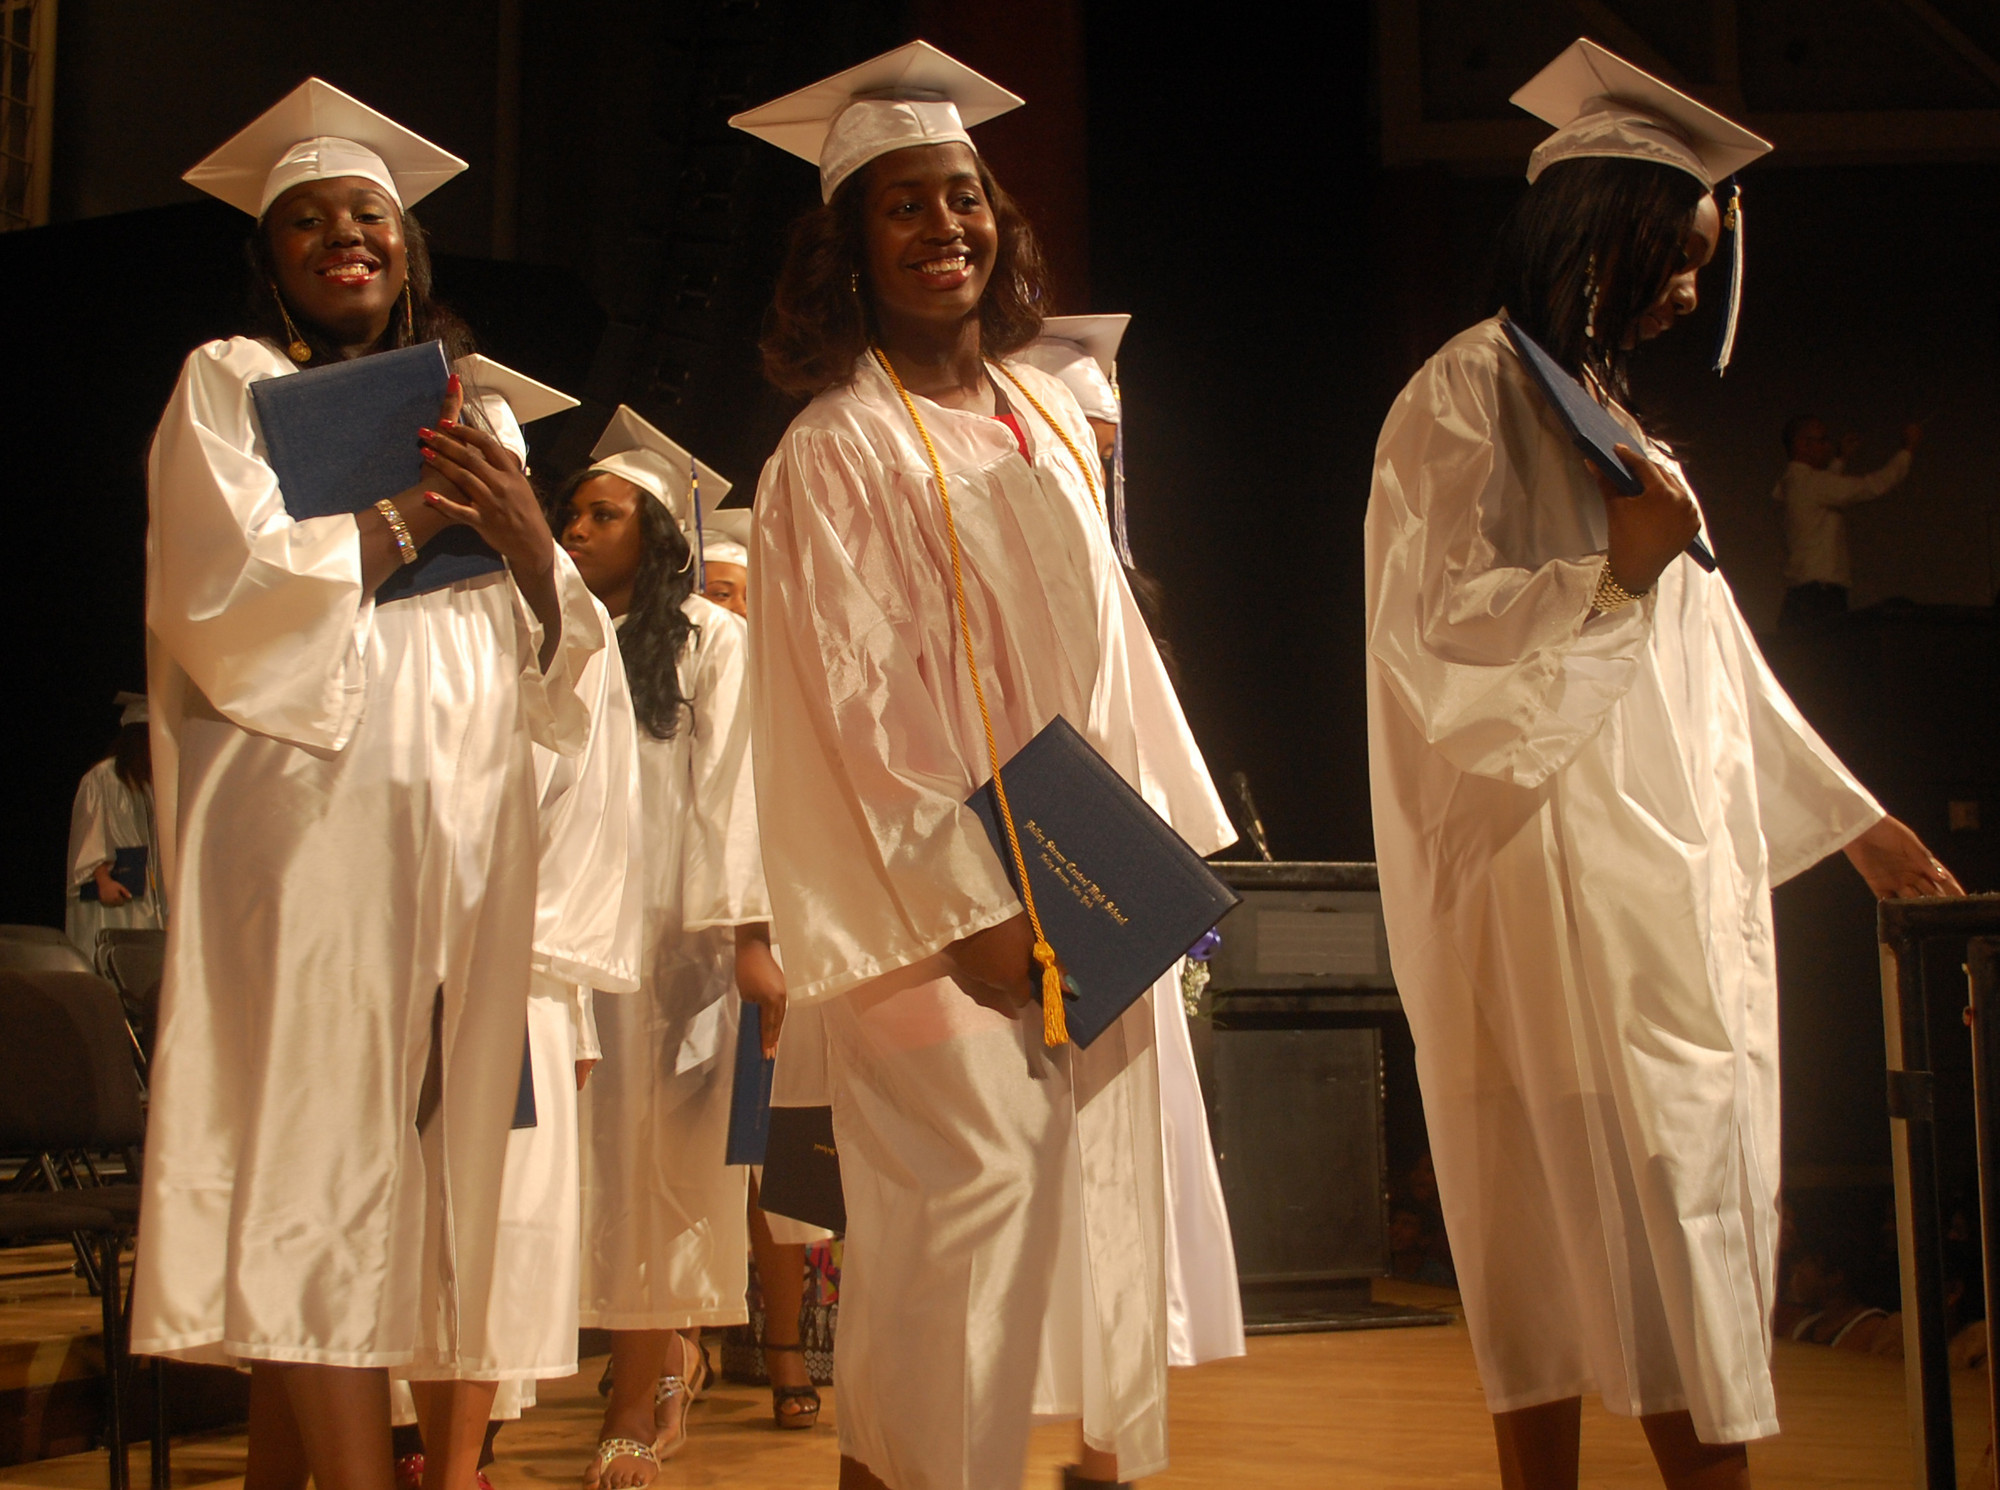 With diplomas in hand, Central graduates were all smiles on June 19.